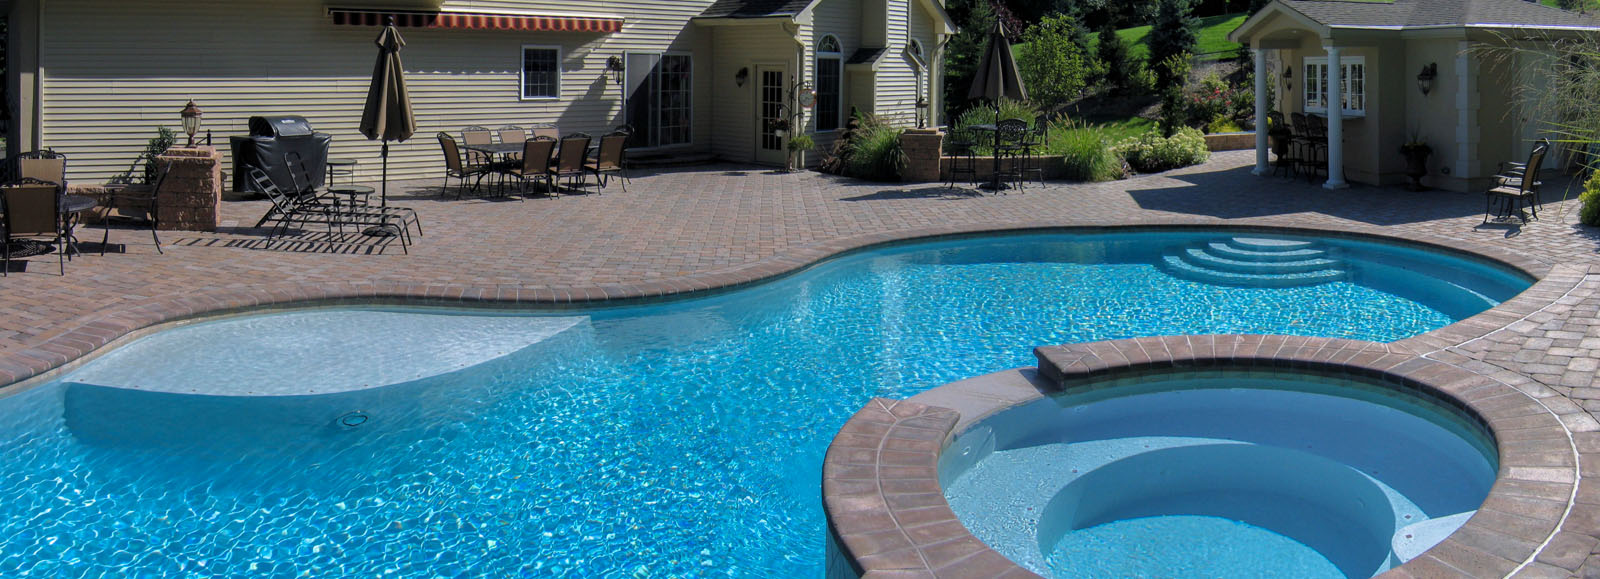 before and after landscape pictures, after, free form swimming pool nj, spa